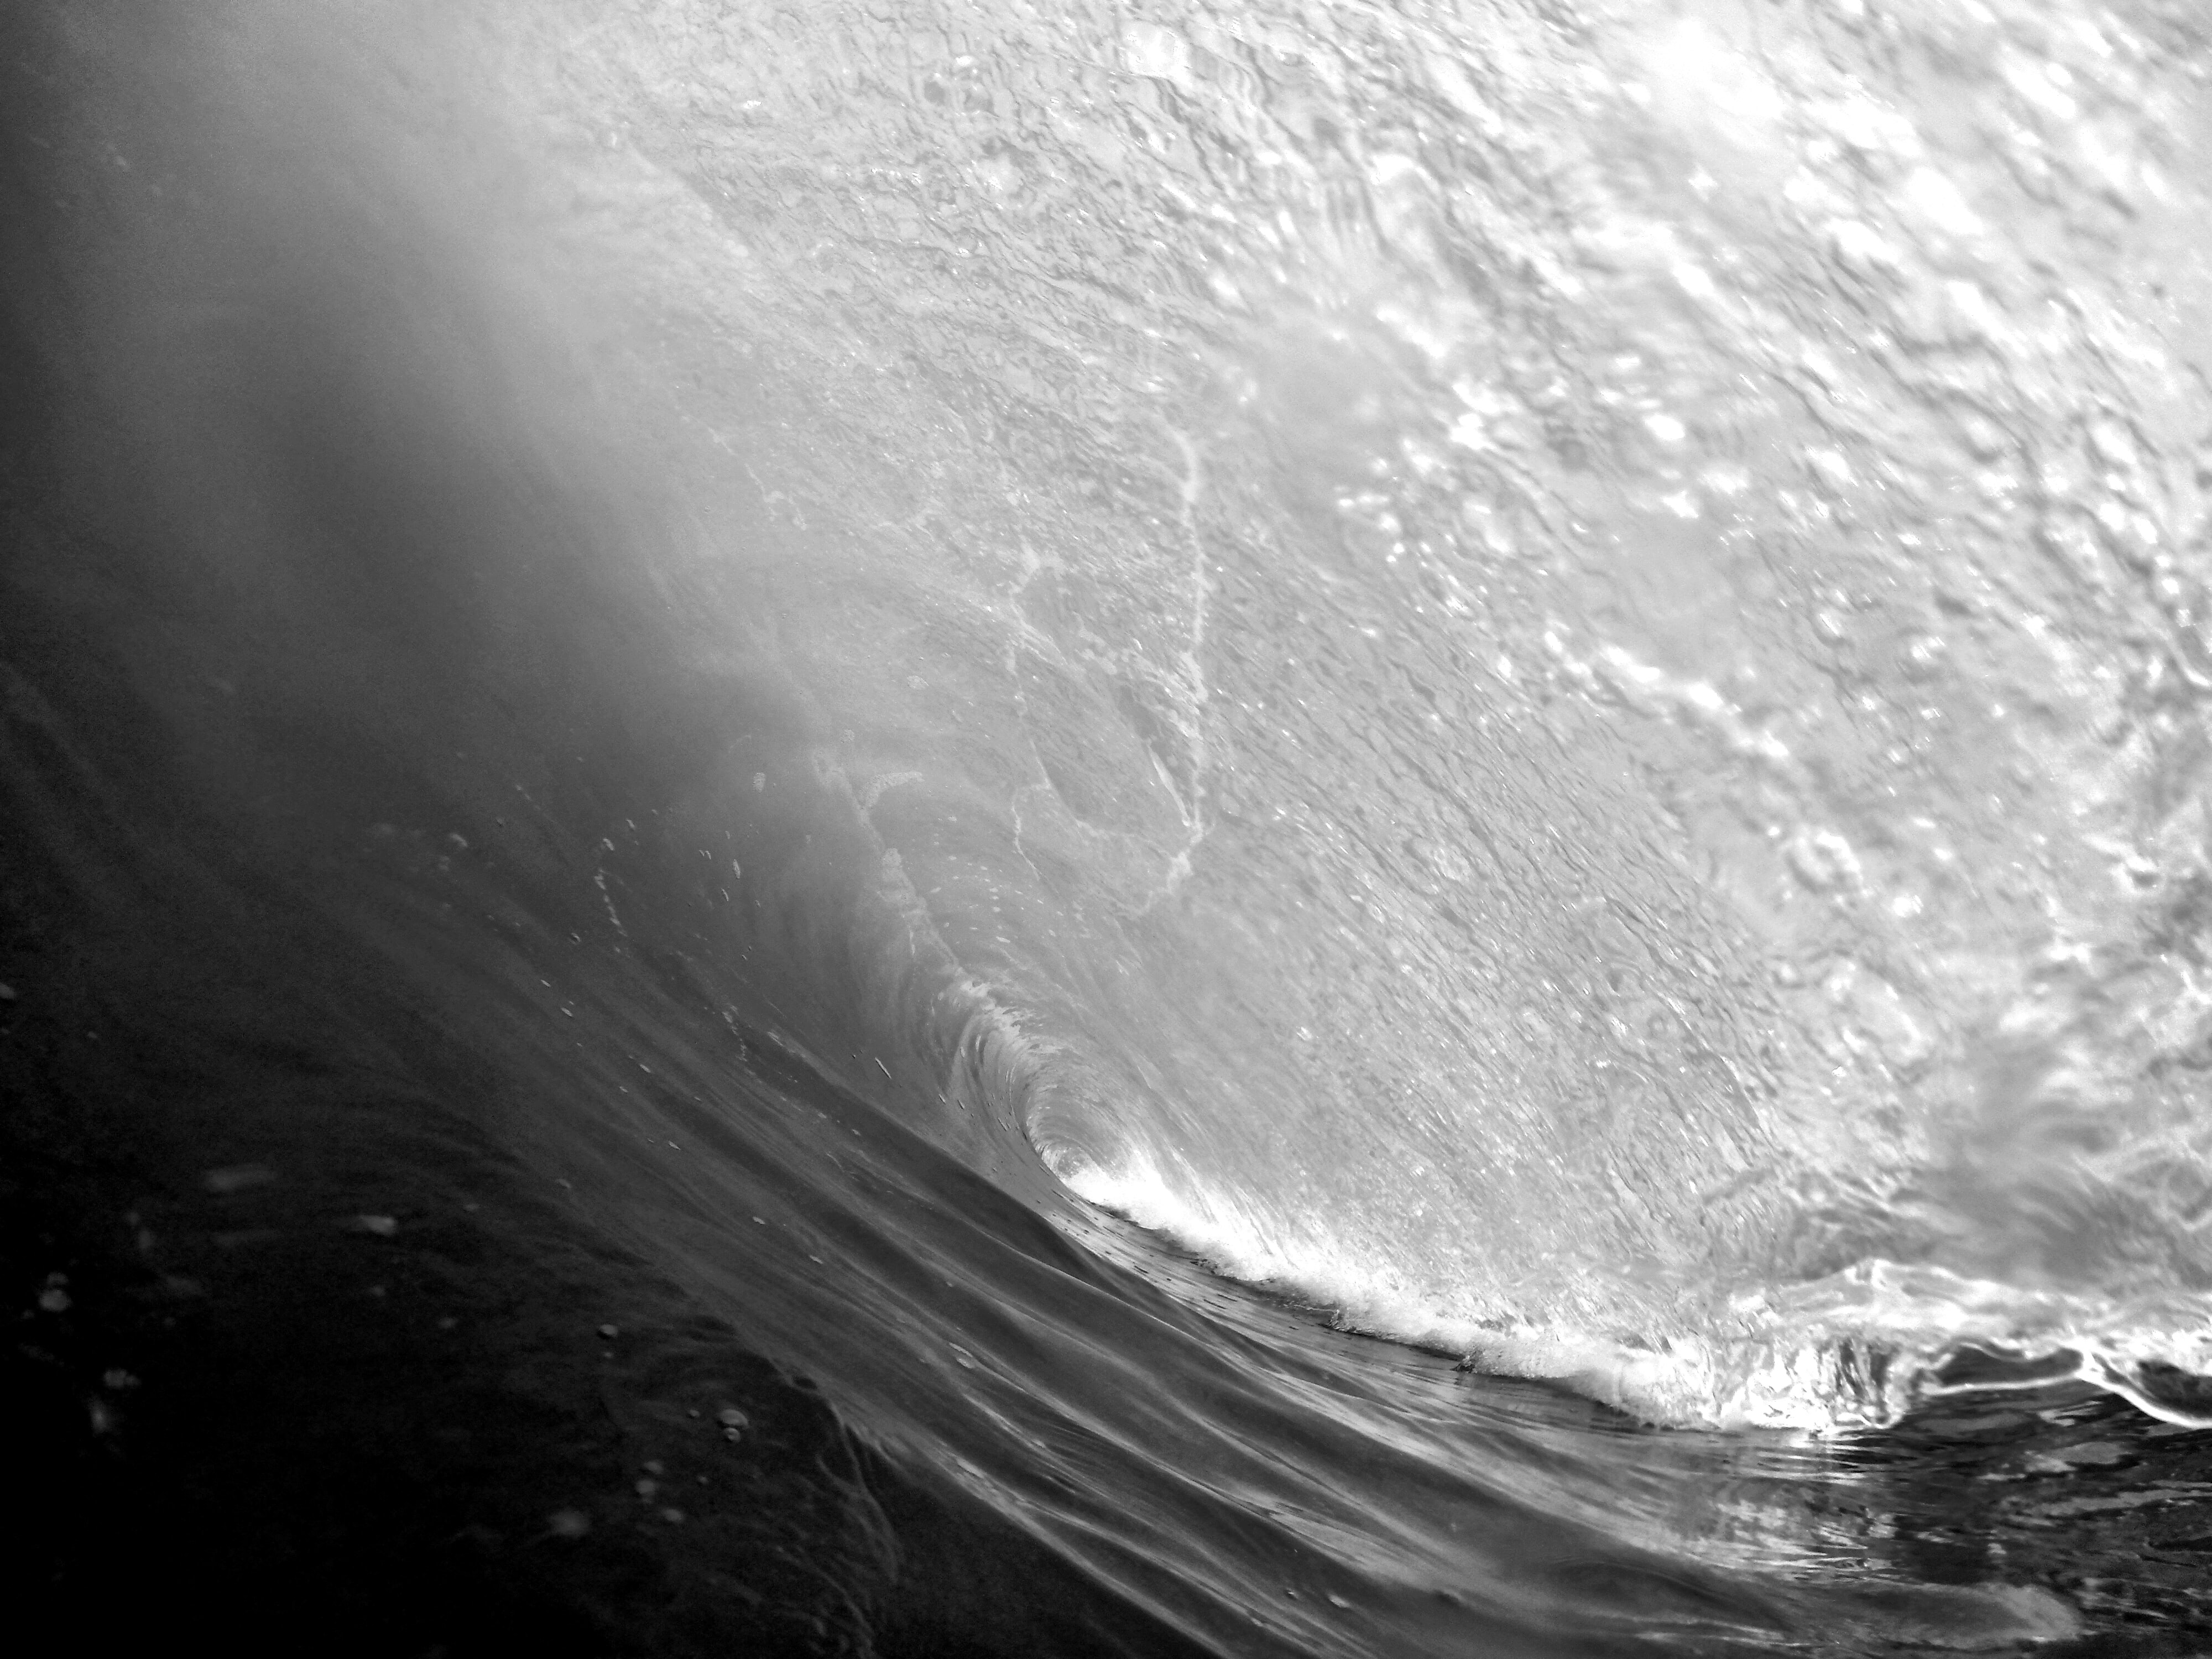 A black and white shot taken from within a rolling wave